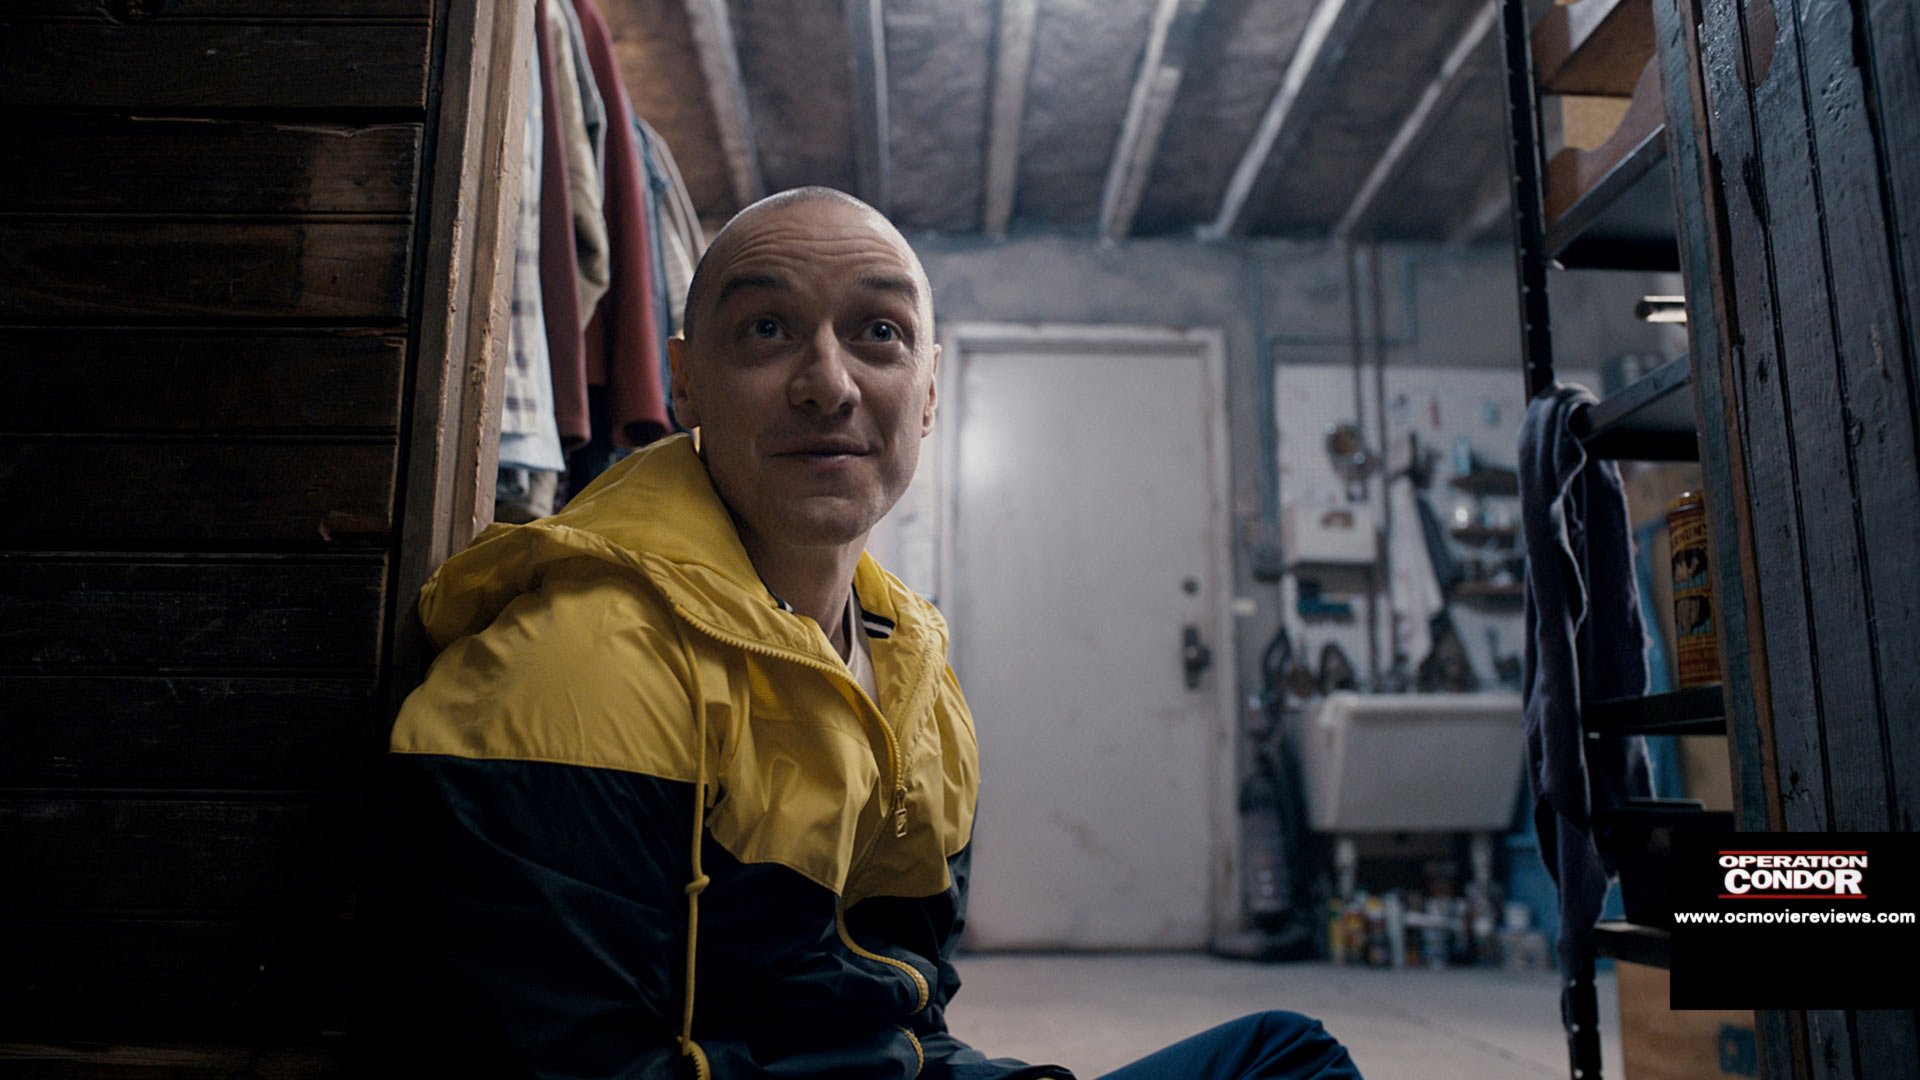 Split Review – Should You Stay Or Should You Split? - OC Movie Reviews - Movie Reviews, Movie News, Documentary Reviews, Short Films, Short Film Reviews, Trailers, Movie Trailers, Interviews, film reviews, film news, hollywood, indie films, documentaries